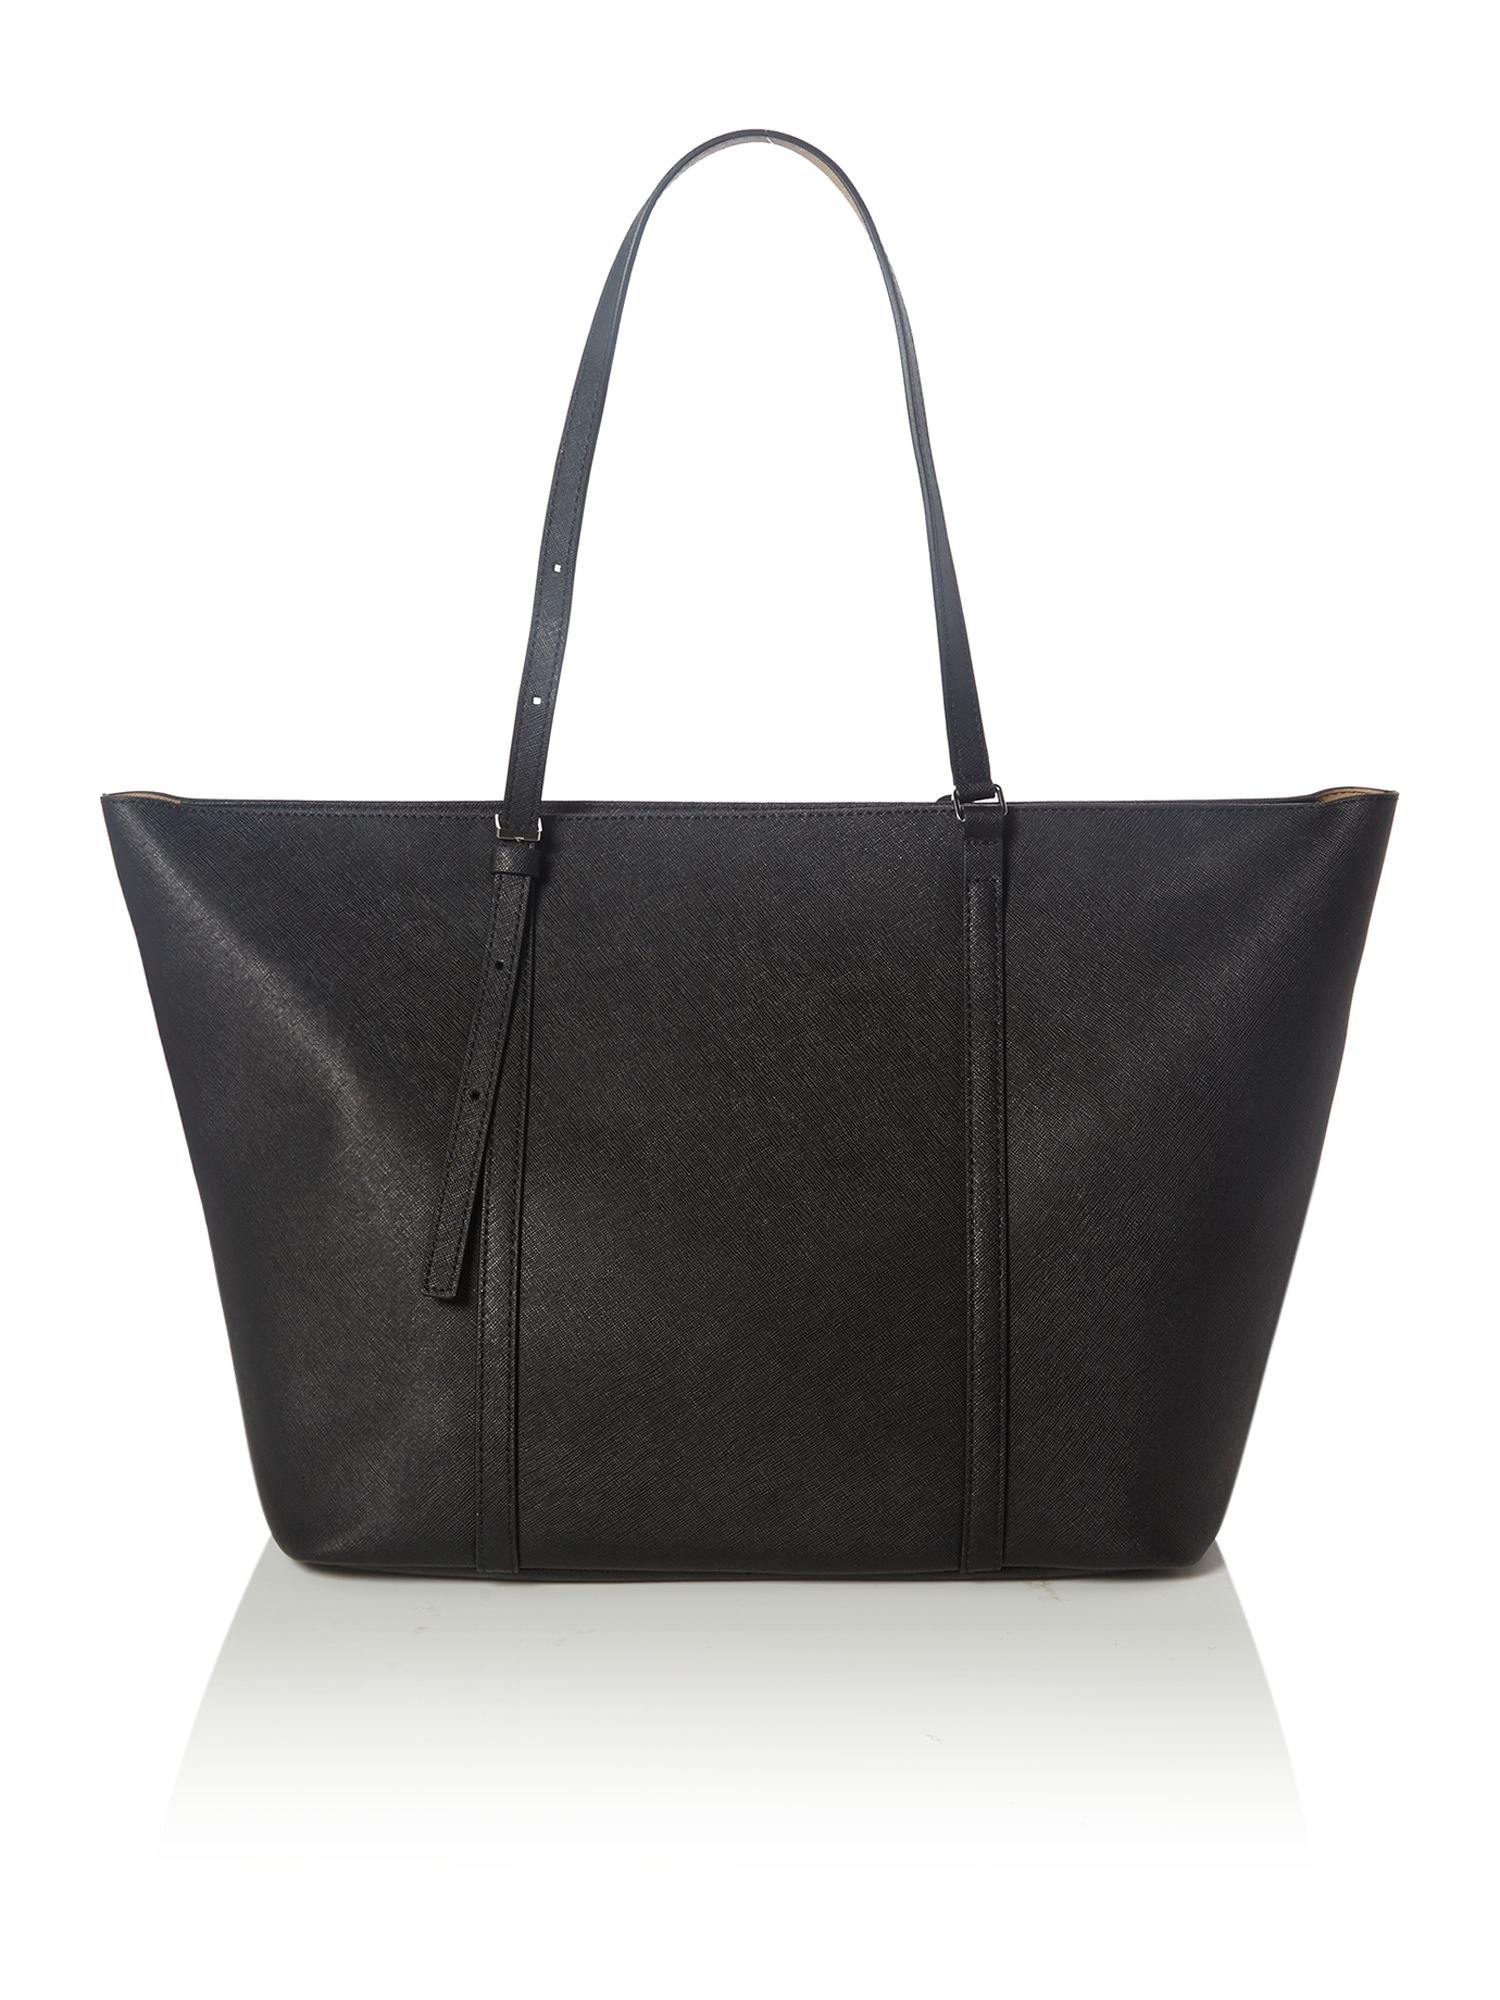 Sofie black tote bag